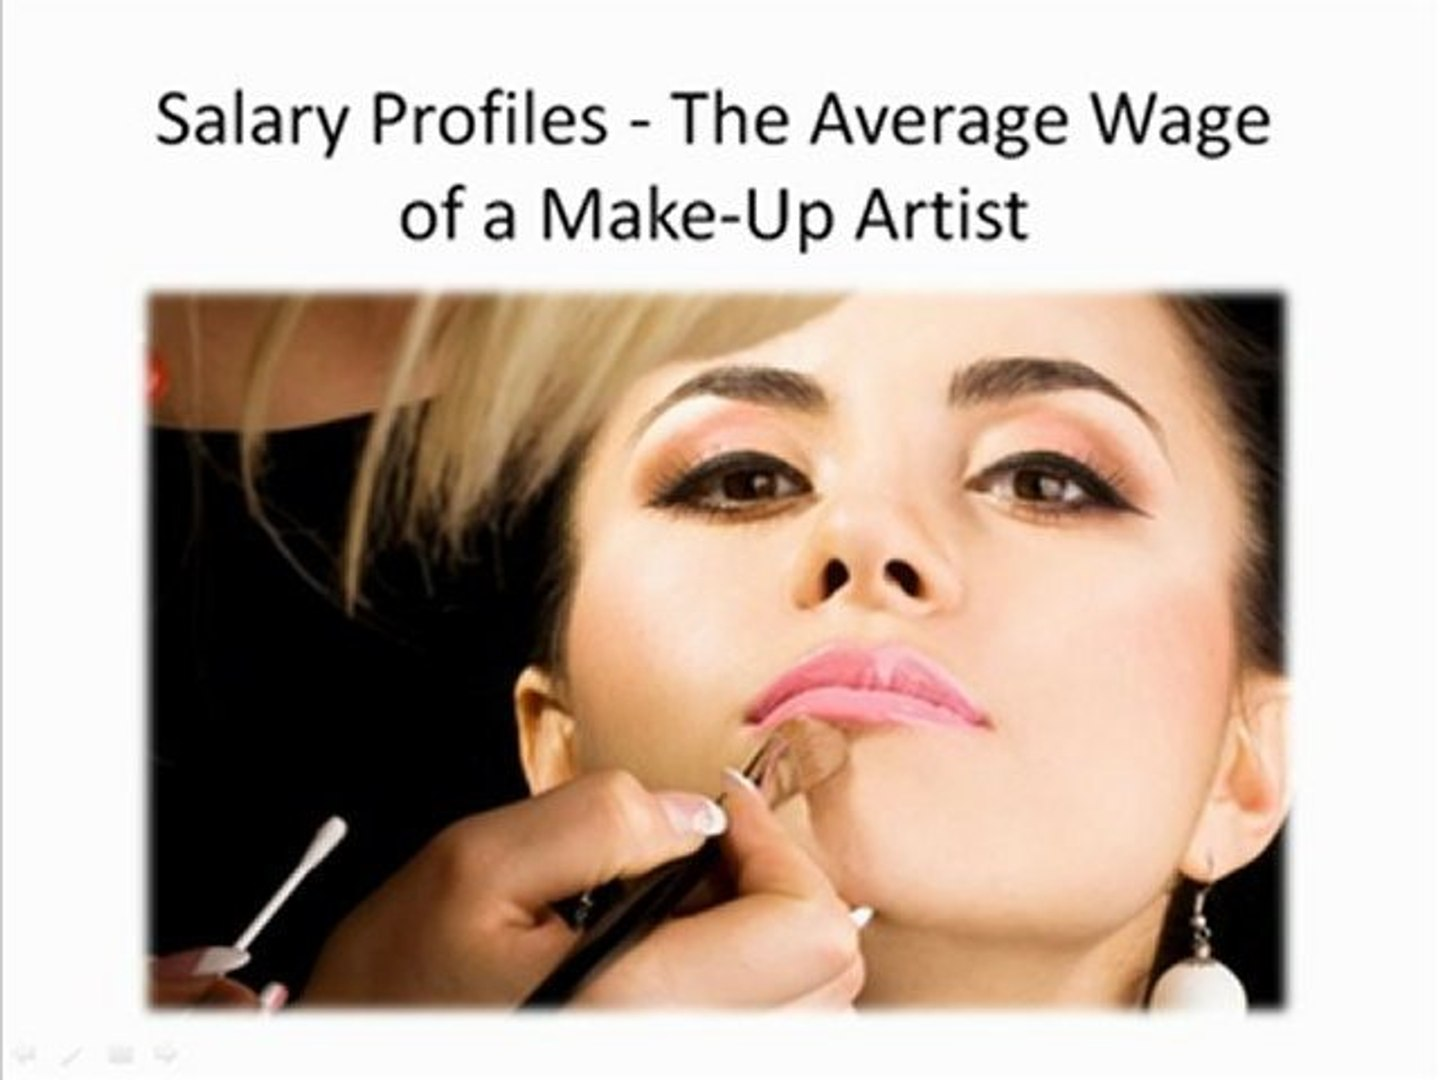 Salary Profiles - The Average Wage of a Make-Up Artist